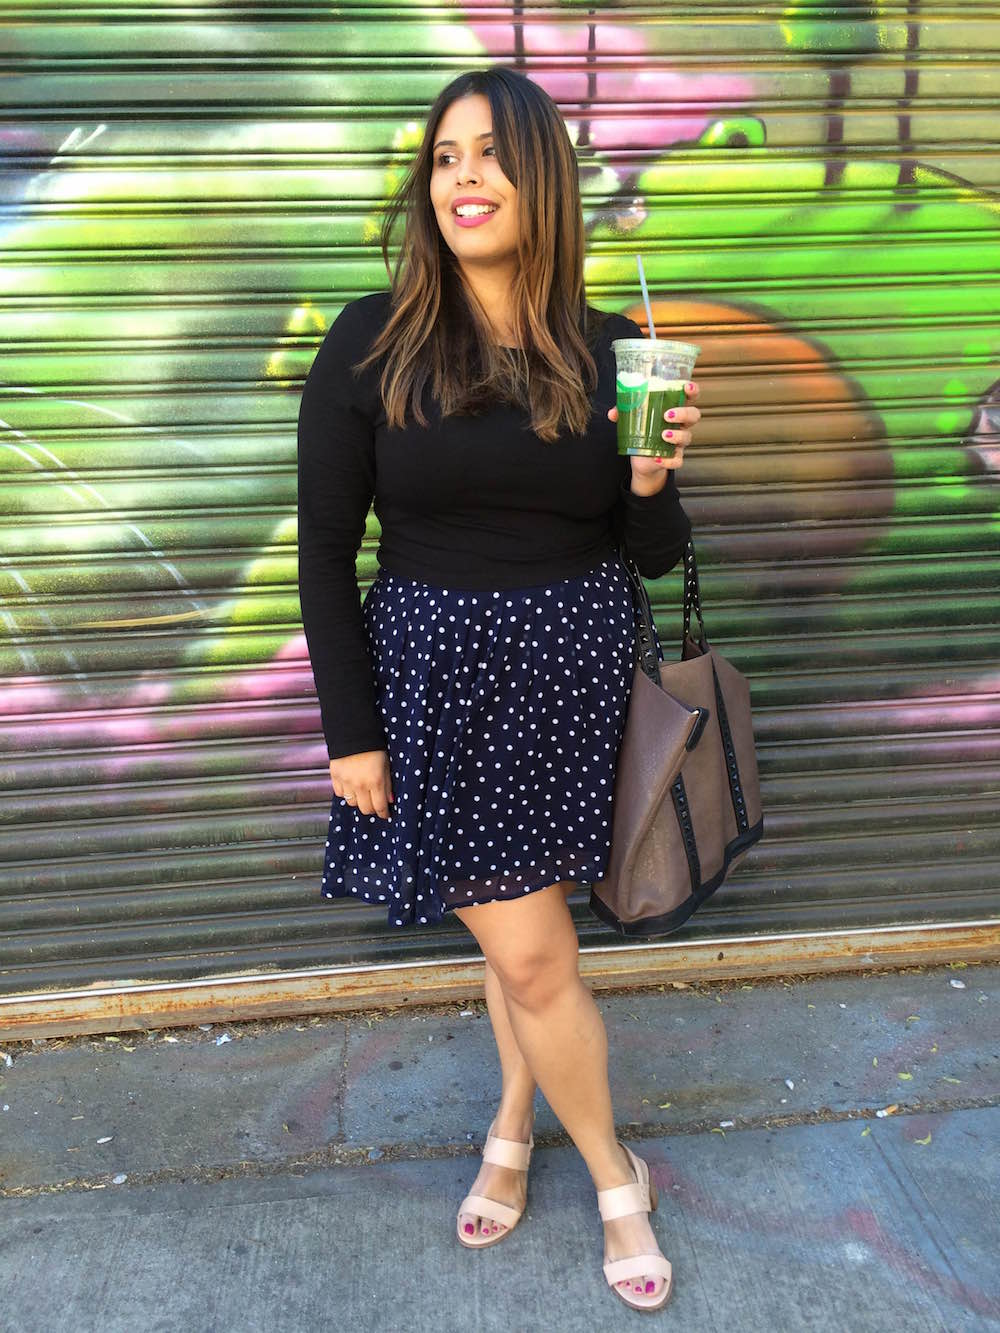 Two Different Ways to Wear a Polka Dot Skirt